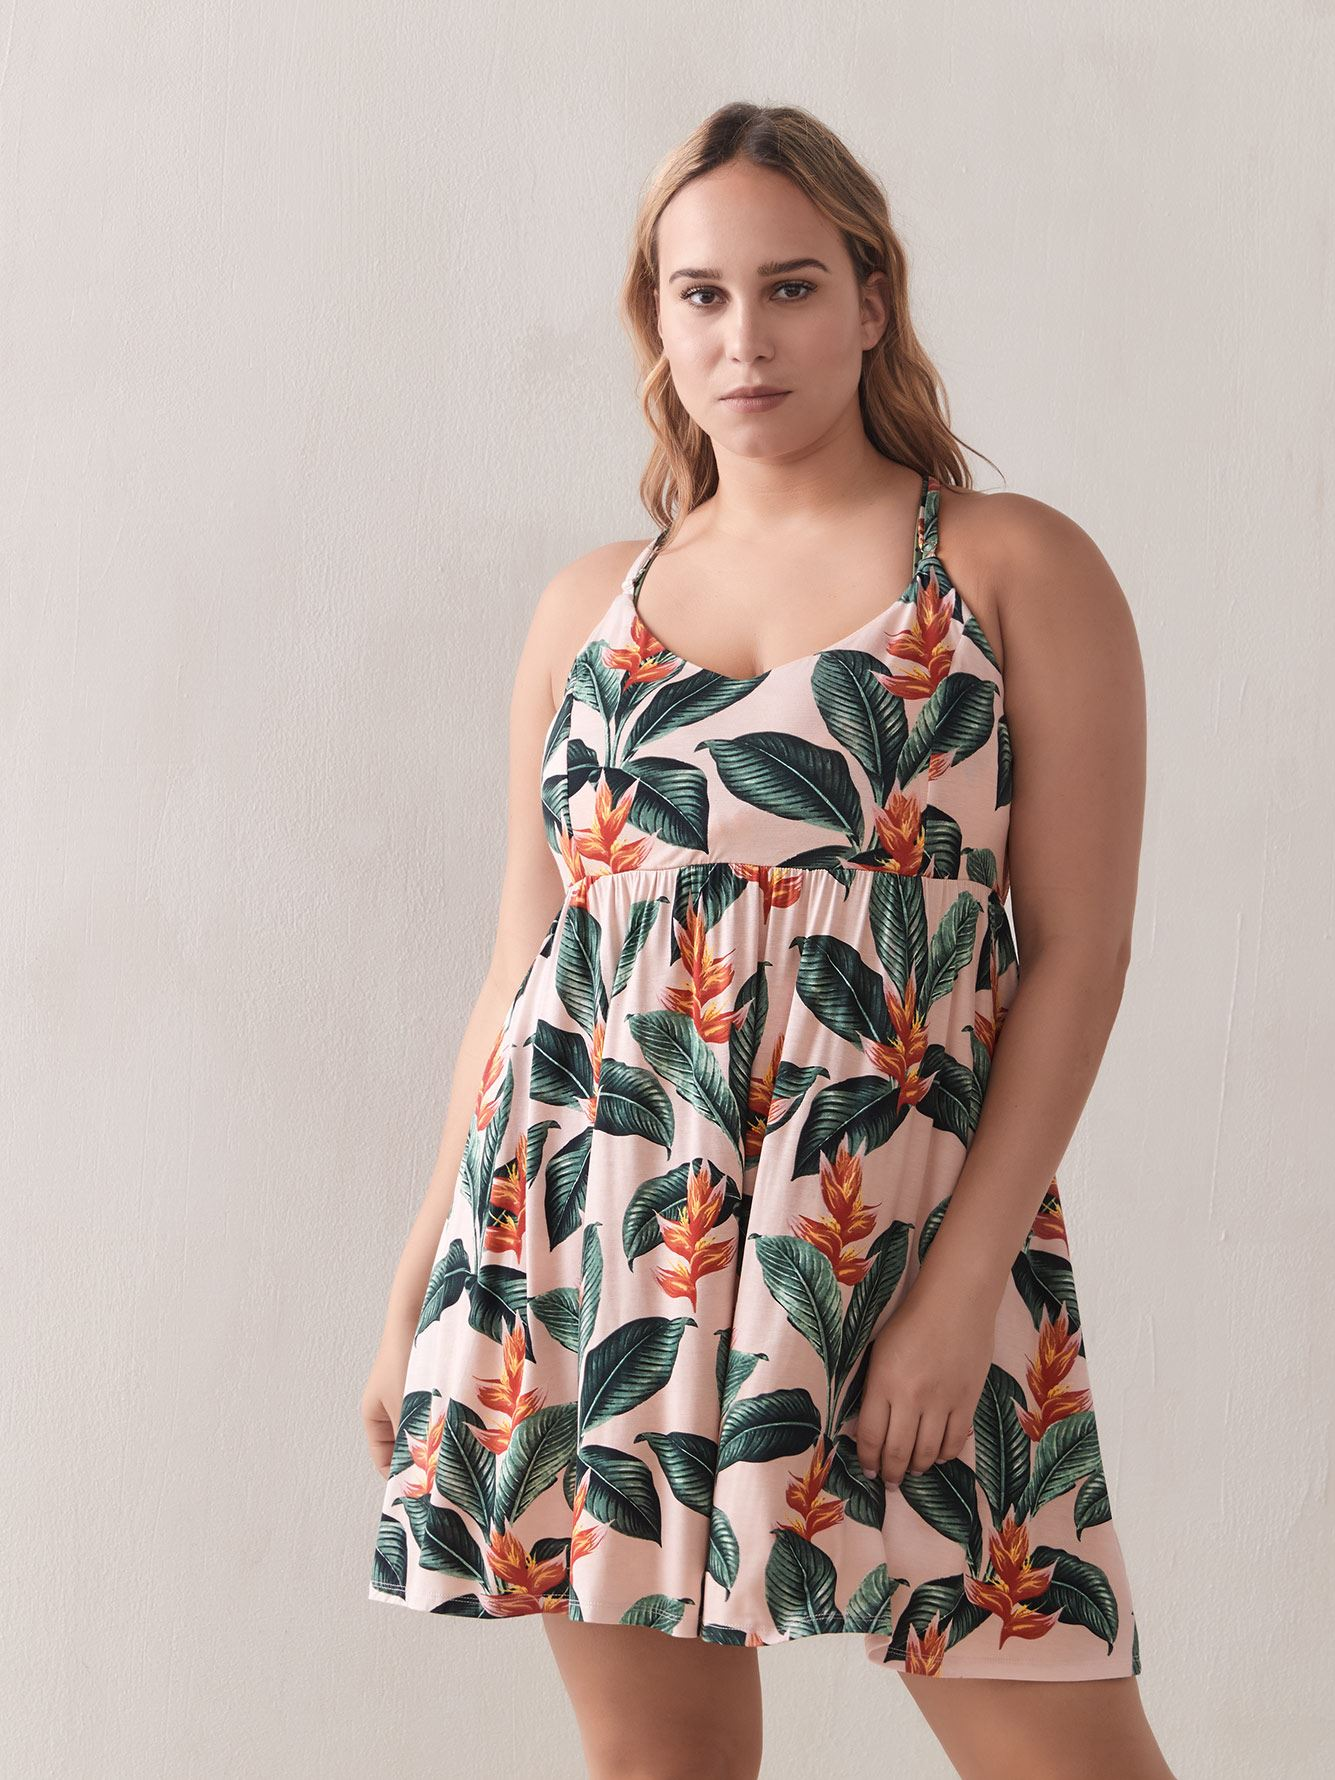 Sweet Escape Ivy Cover-Up Dress - Body Glove